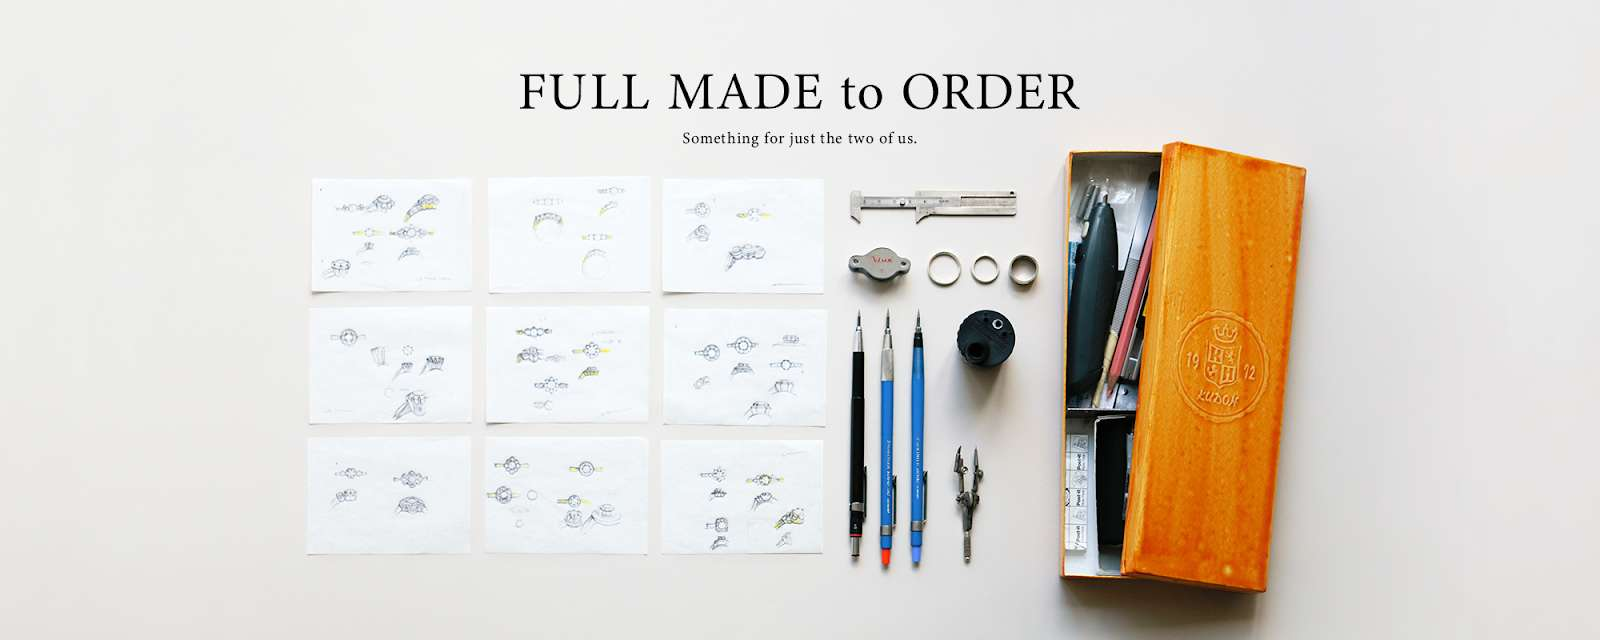 FULL MADE to ORDER